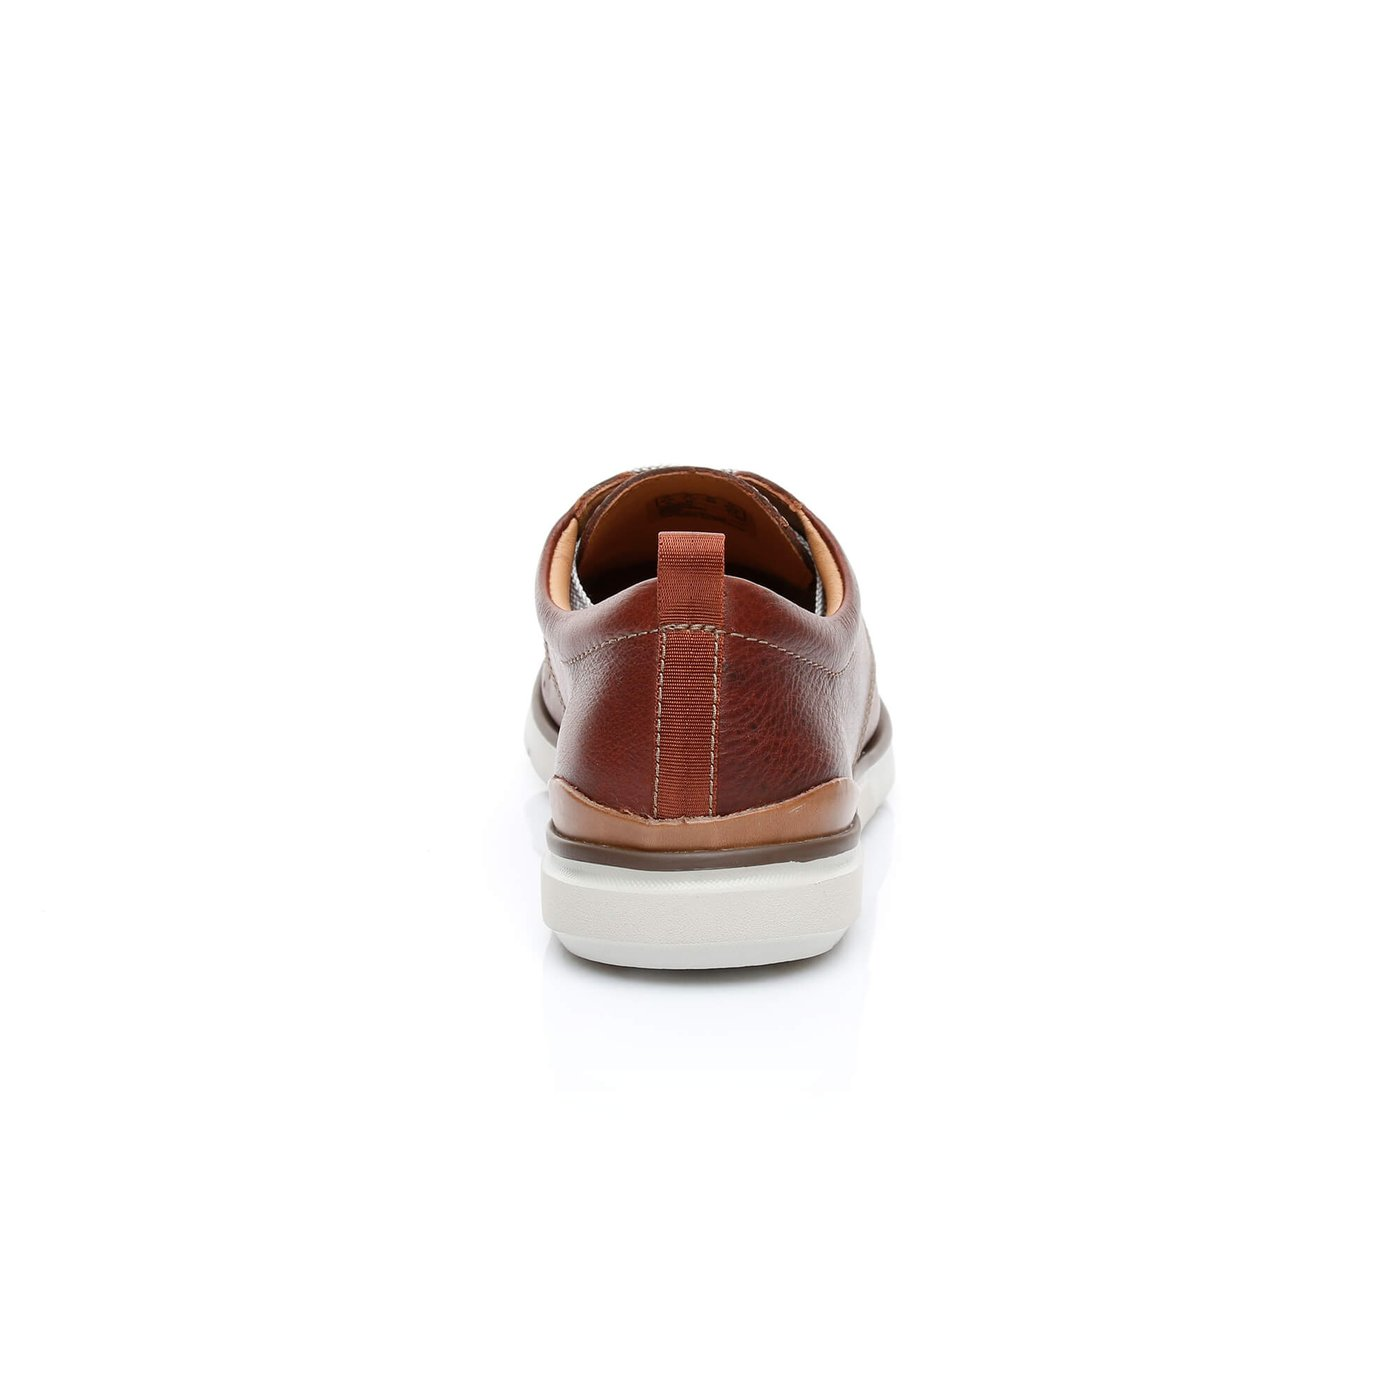 Clarks Edgewood Mix Erkek Bordo Sneakers